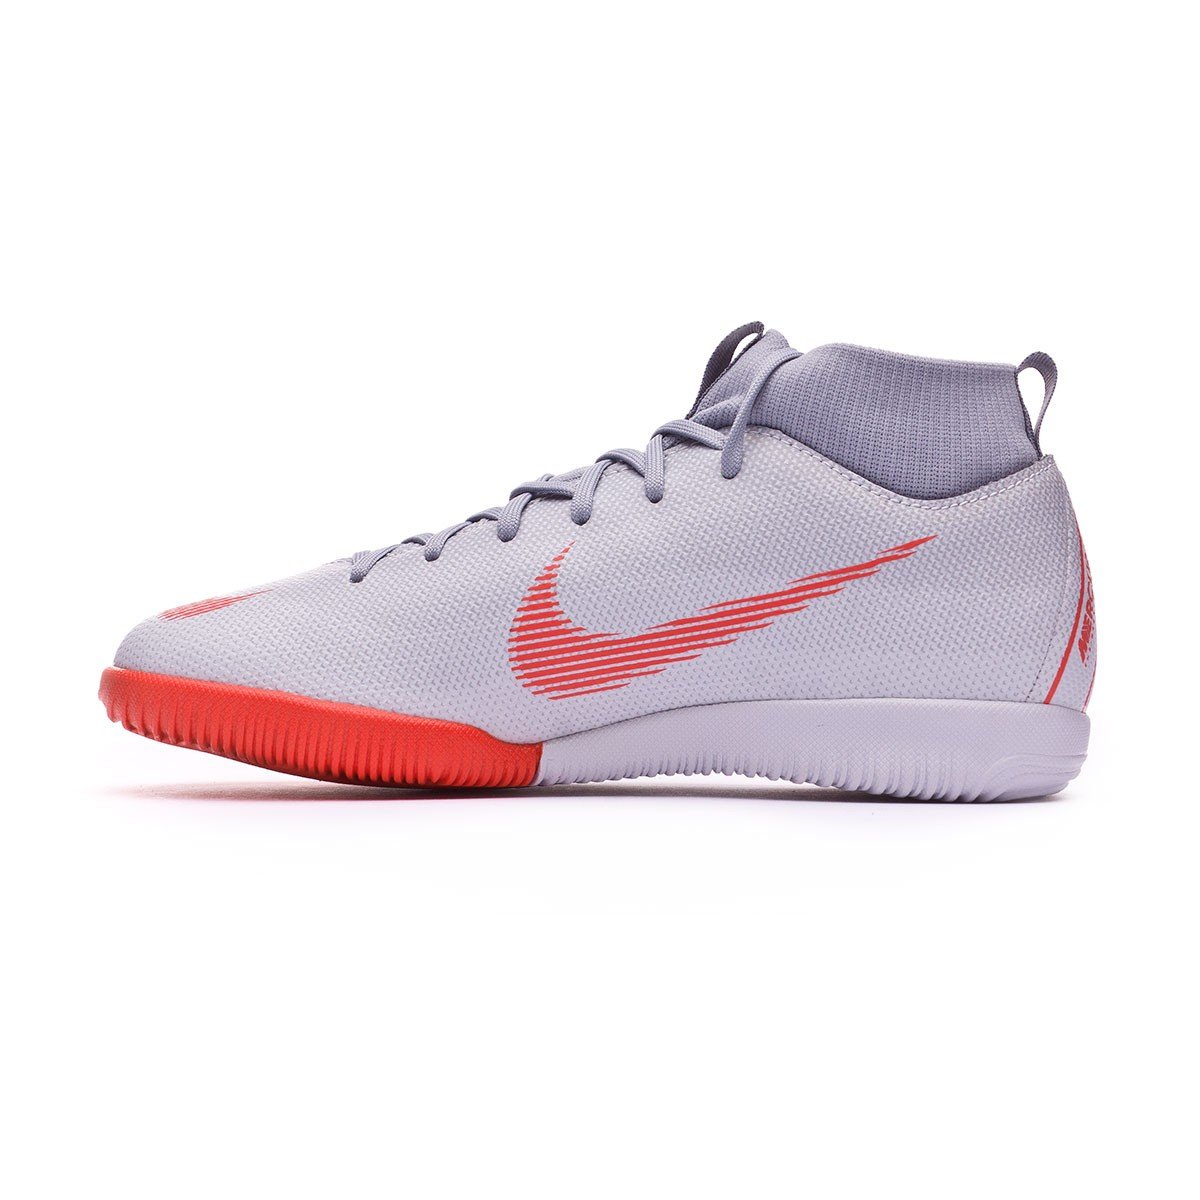 Futsal Boot Nike Kids Mercurial SuperflyX VI Academy GS IC Wolf grey-Light  crimson-Pure platinum - Leaked soccer a5bca7dbe8227